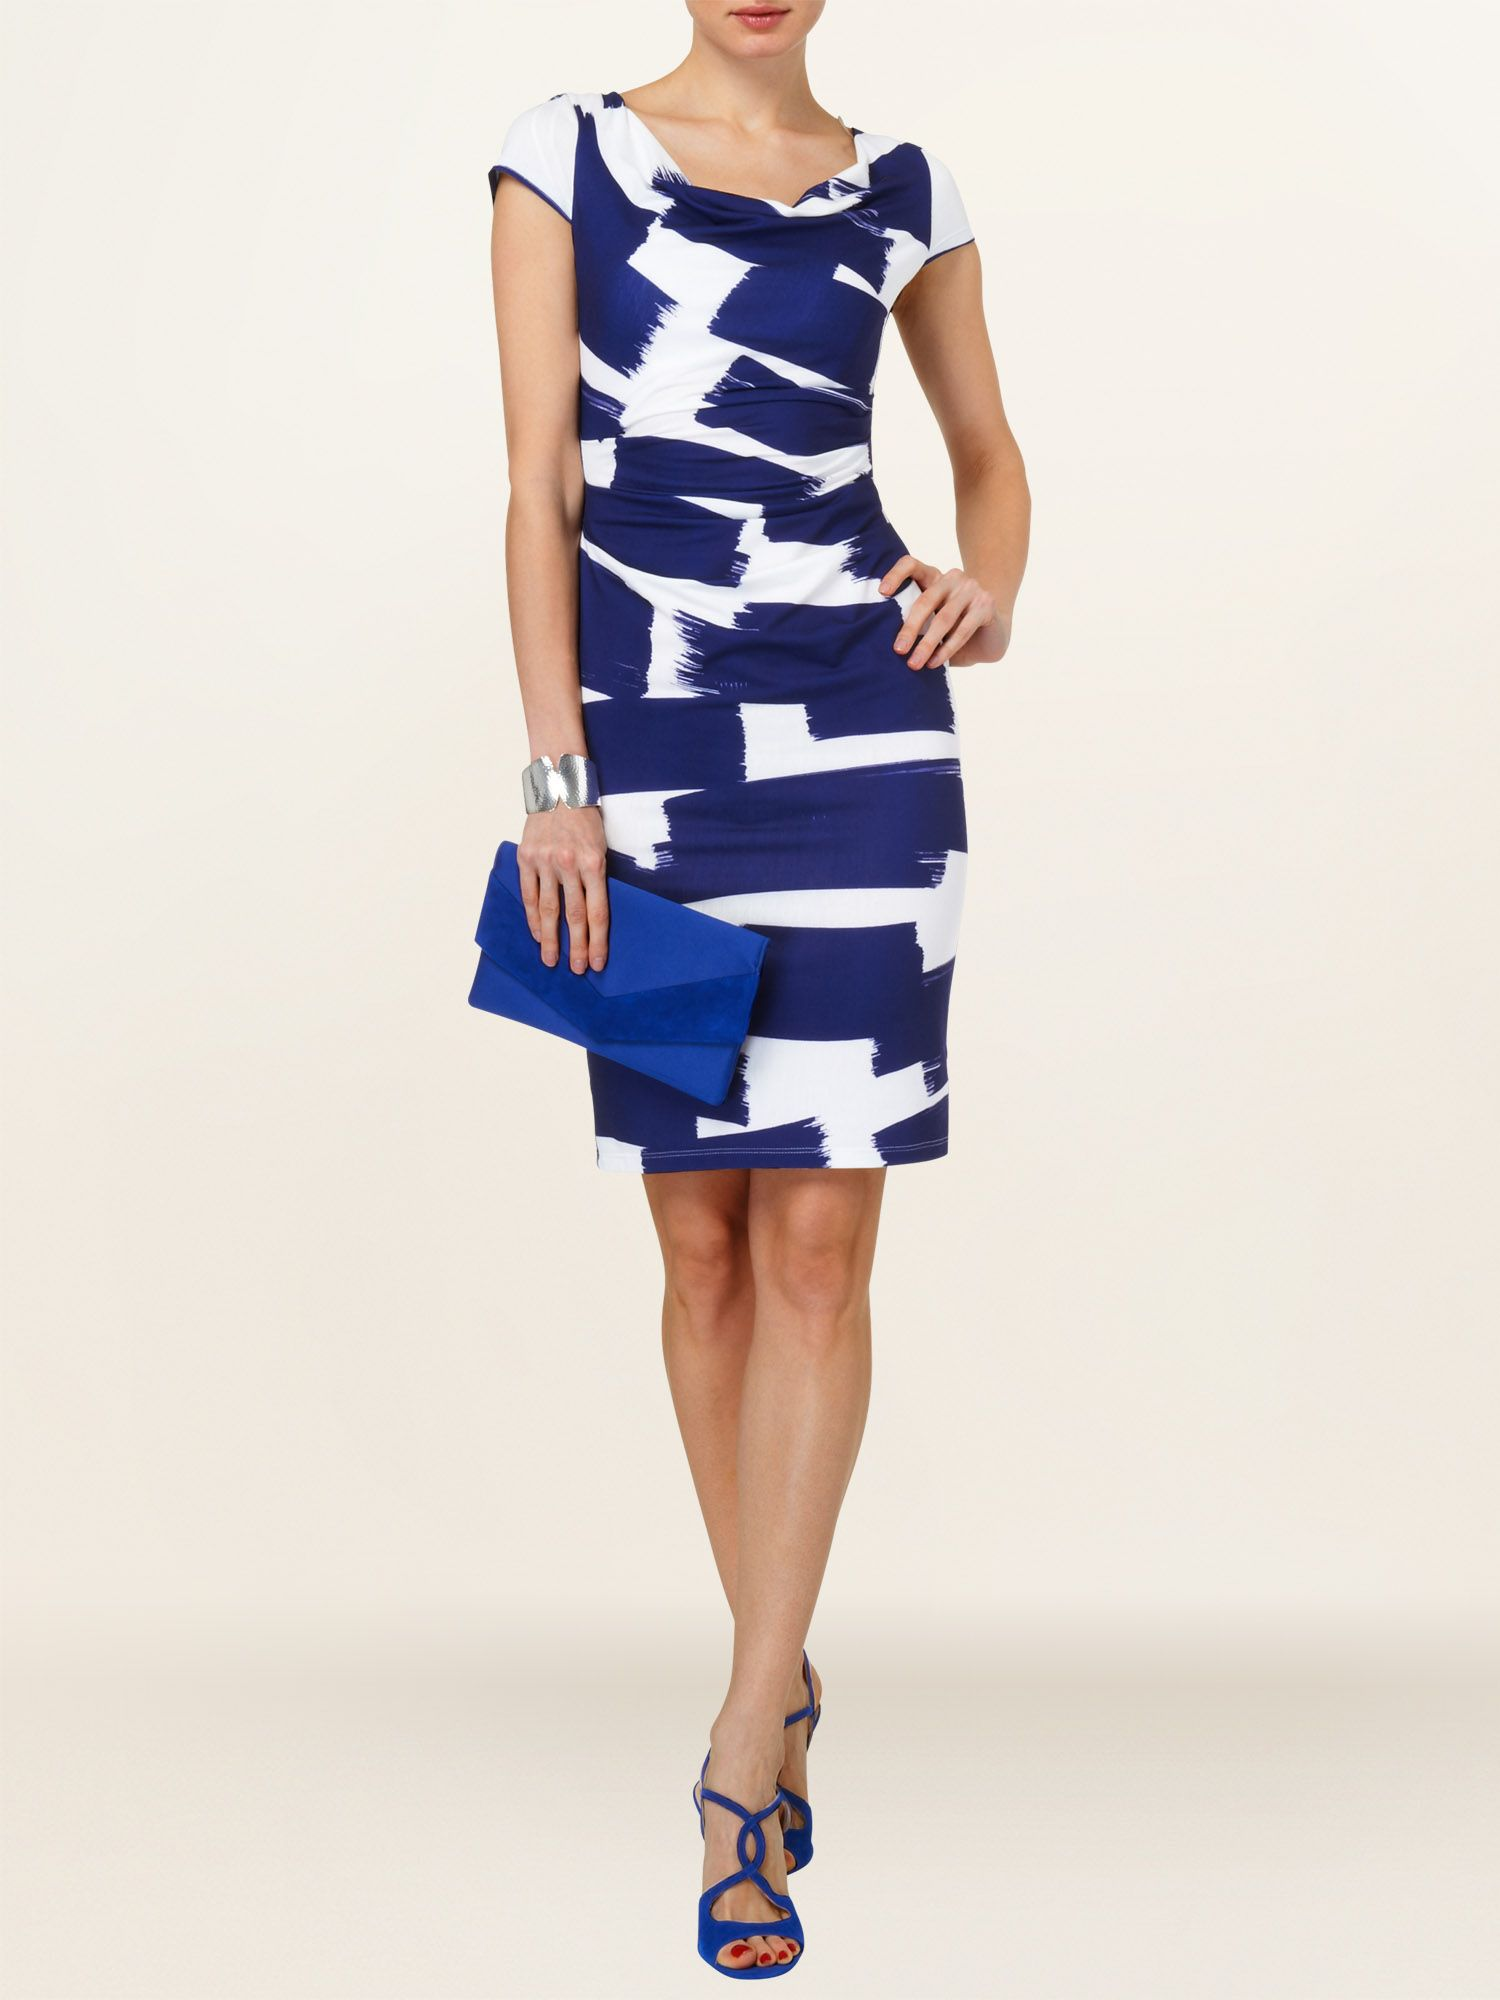 Annie abstract dress